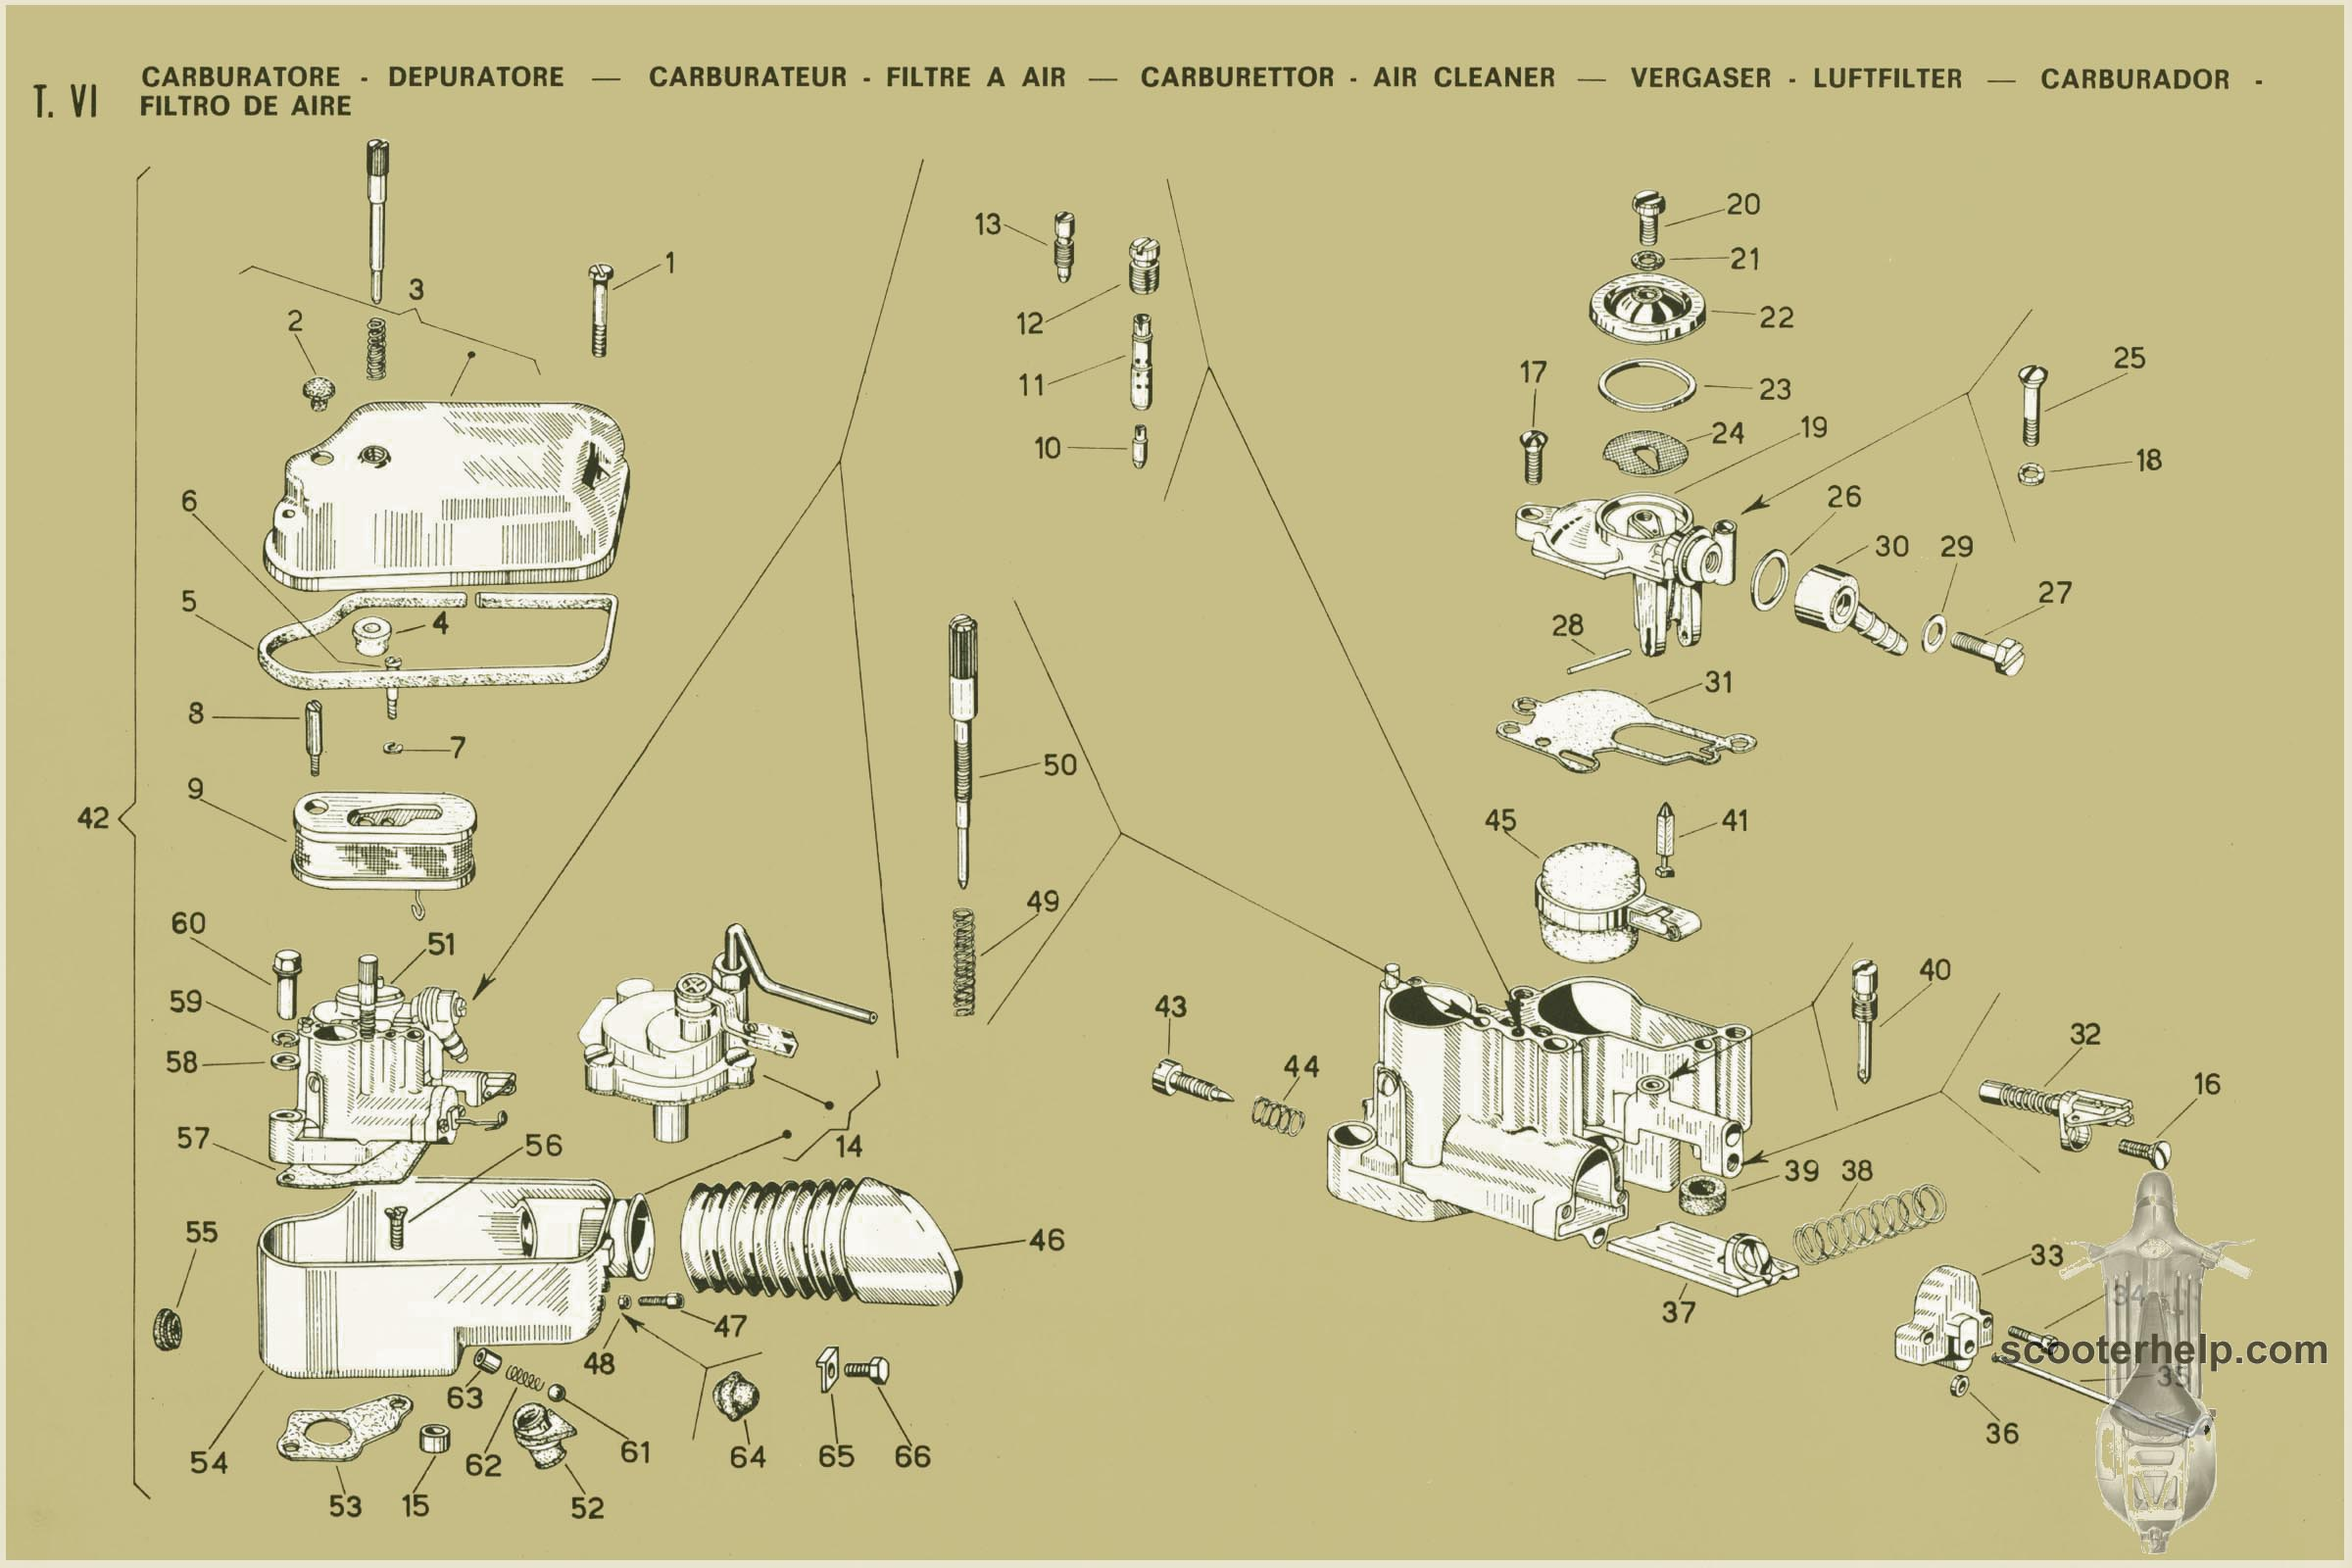 Vespa Px Carb Diagram 125 Wire Diagrams Wiring Modern Box Rubber Grommet Scooters Scooterhelp Com Manuals Vnx1t Vsx1t Parts Page038